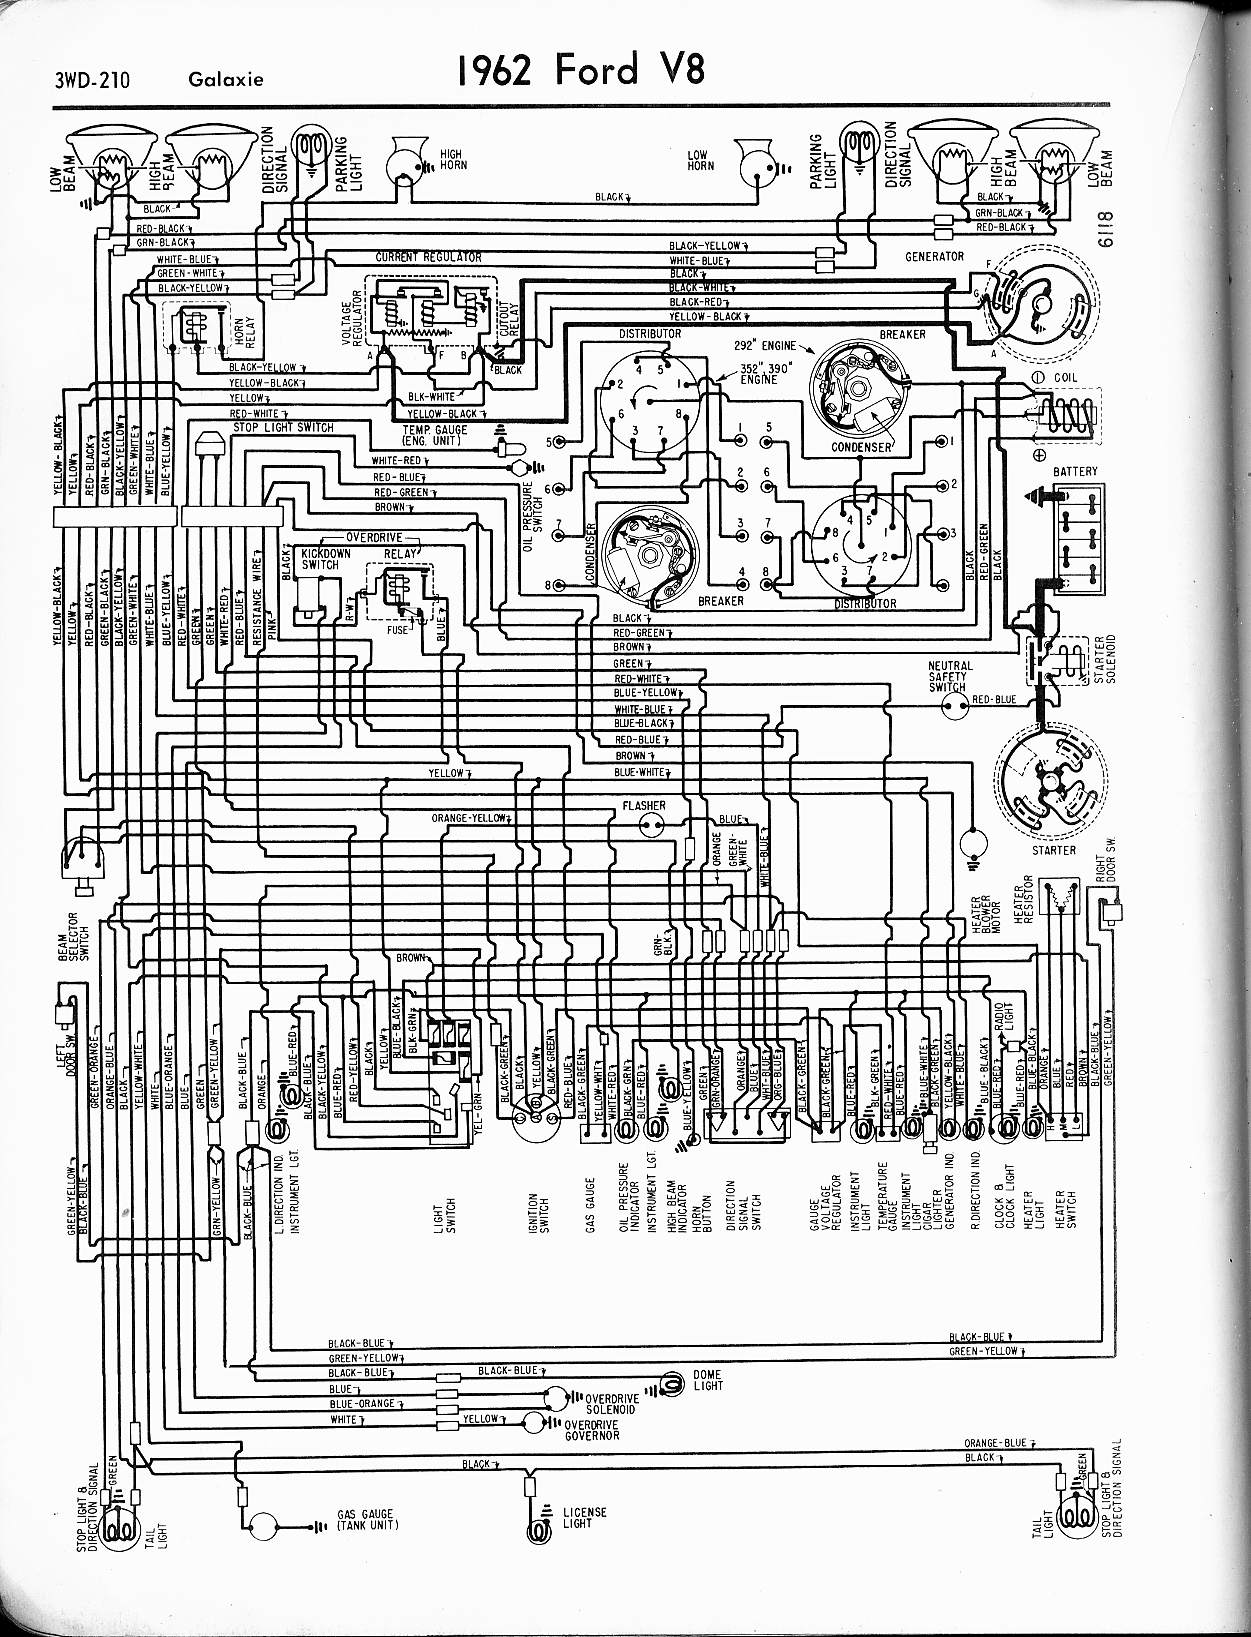 57 65 ford wiring diagrams 2005 mustang gt wiring diagram 1957 thunderbird power window wiring diagram #14